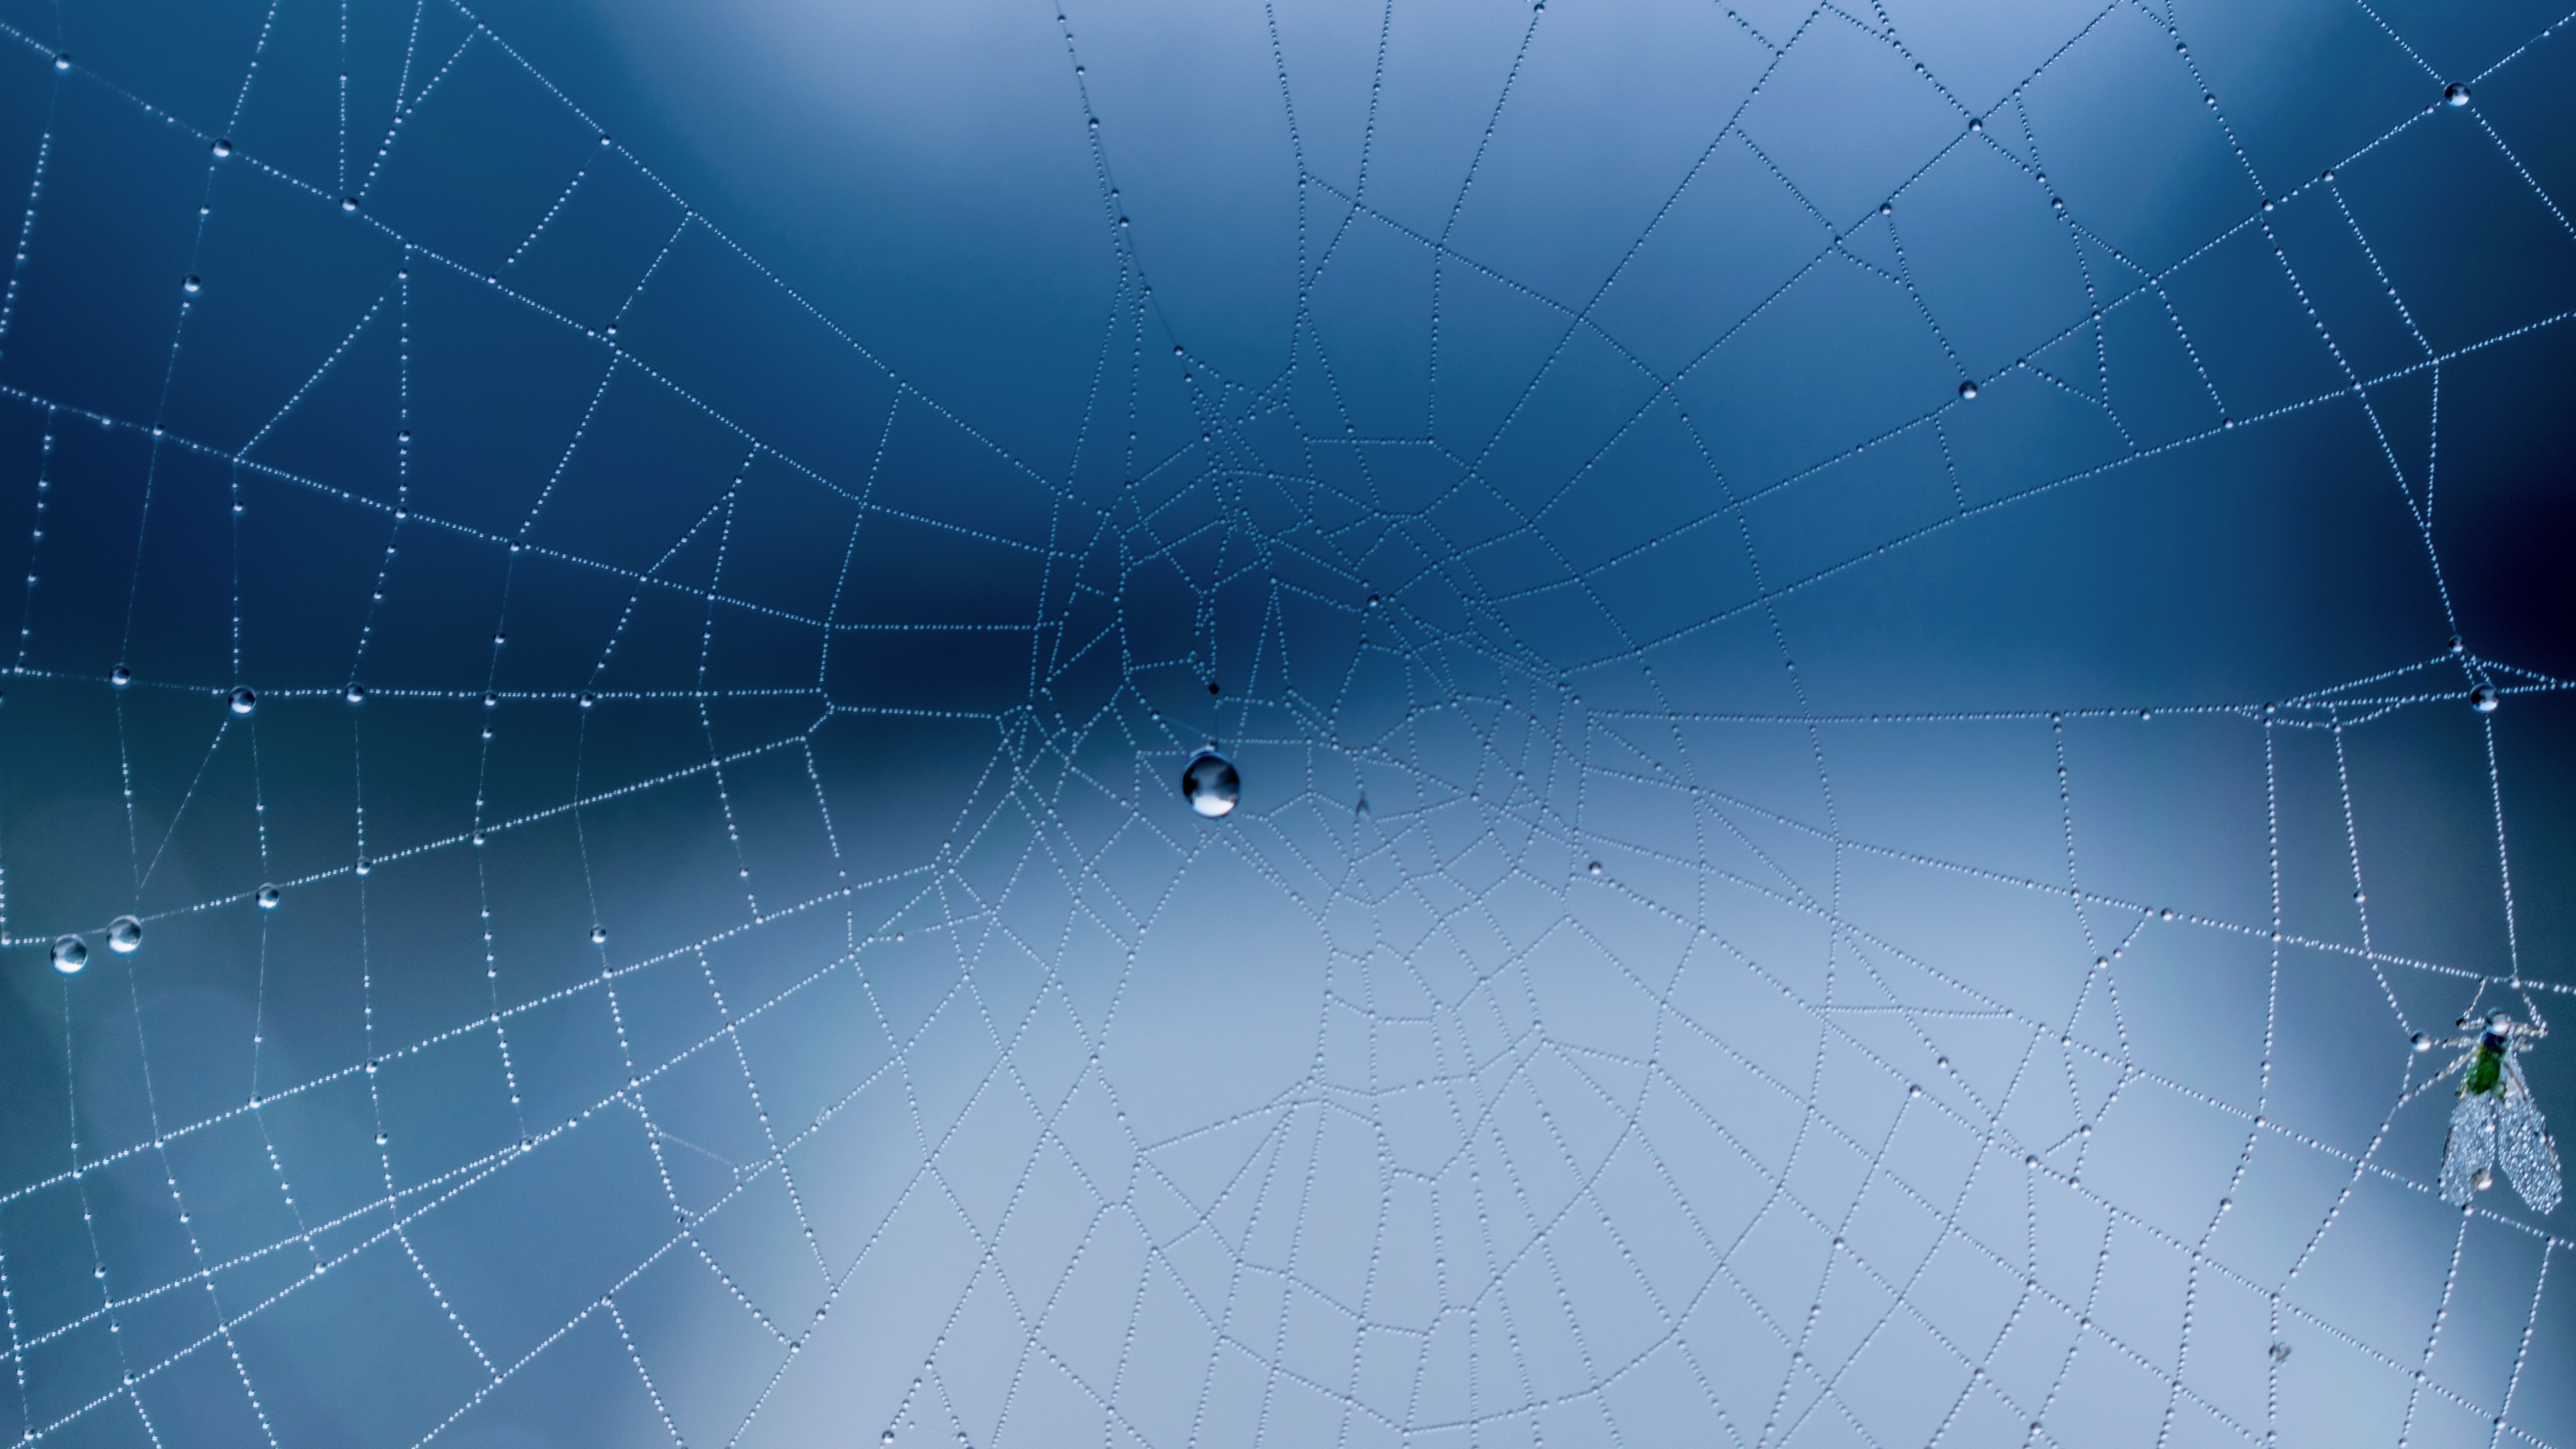 3840x2160  Wallpaper spider web, close-up, drops